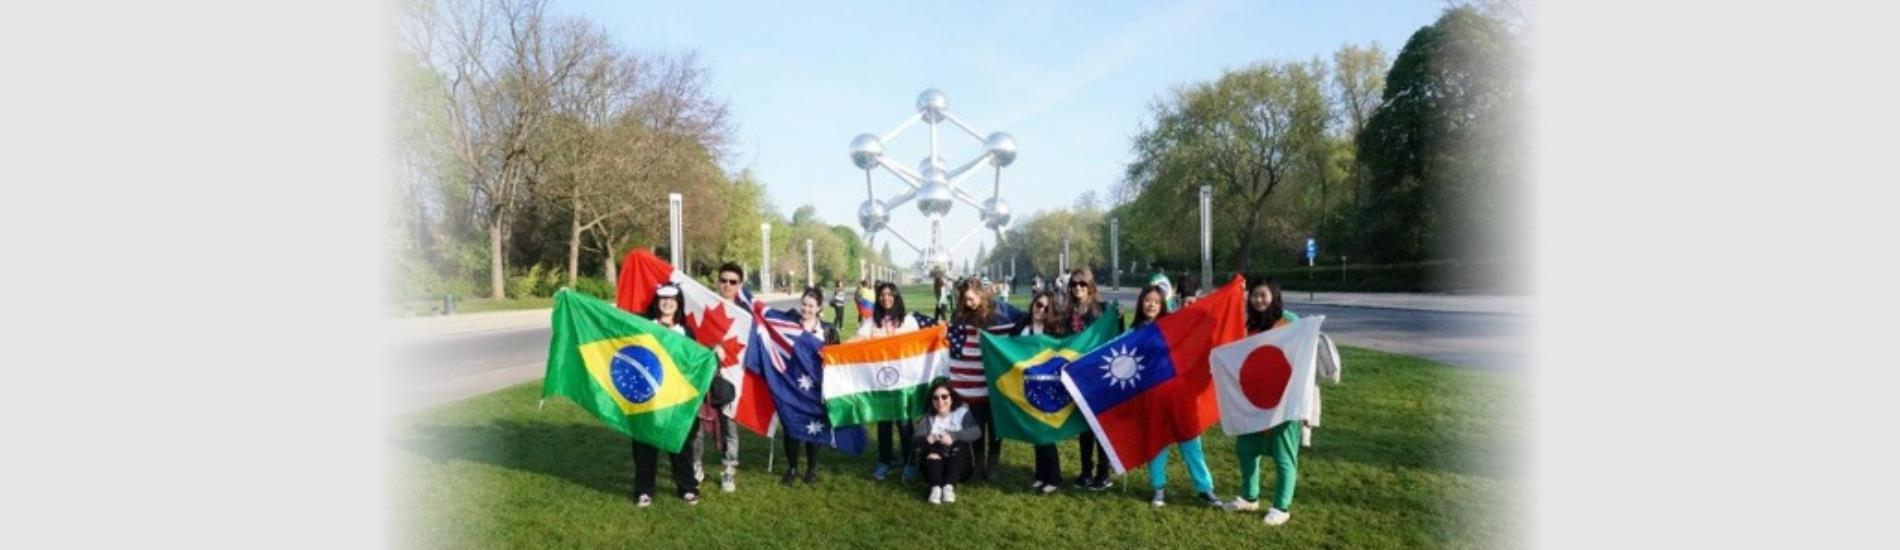 See the Atomium in Brussels and other great European sights